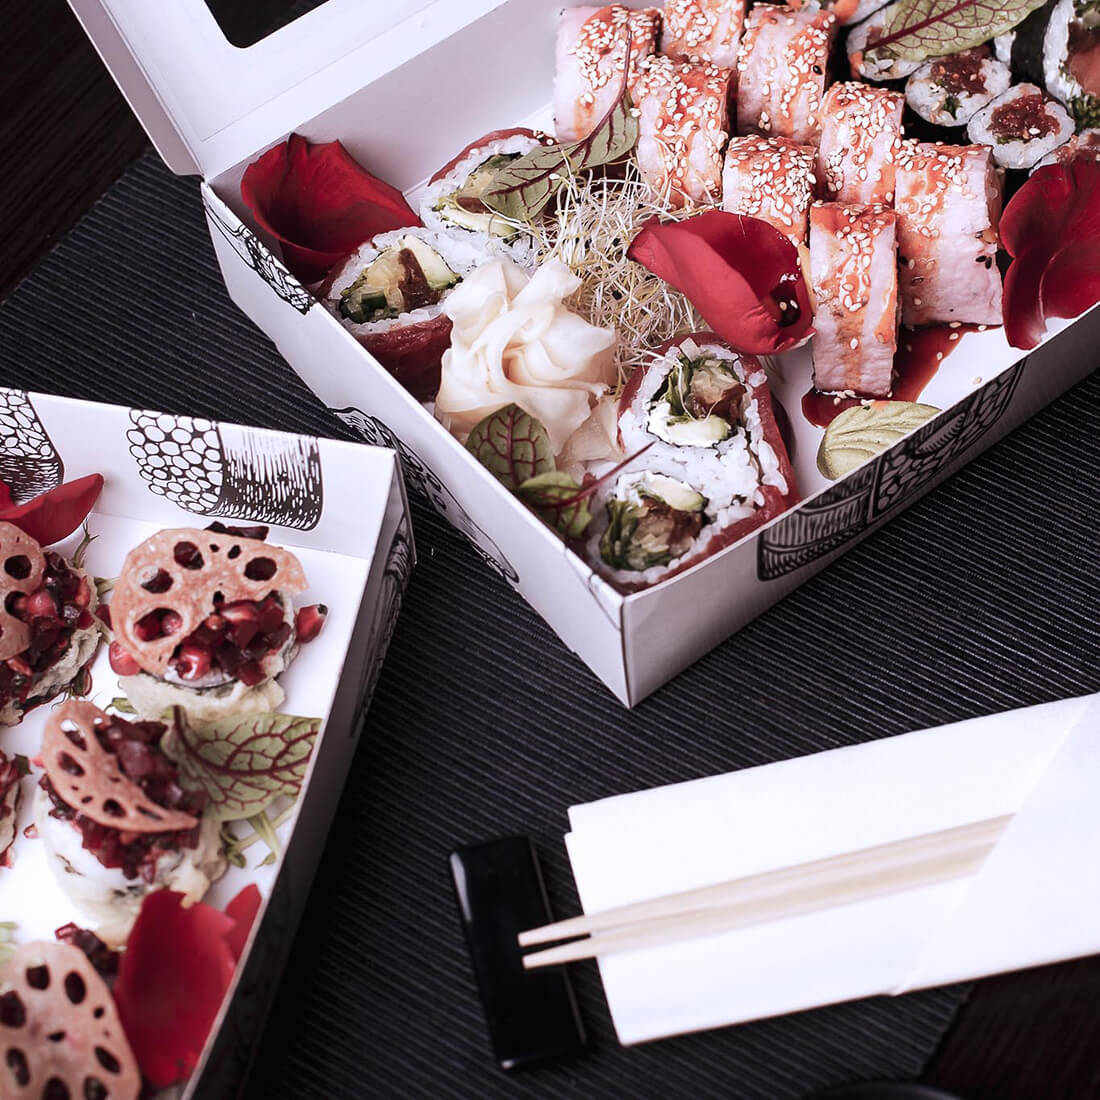 Elegant sushi boxes made of white paper harmonize with the atmosphere of the restaurant.